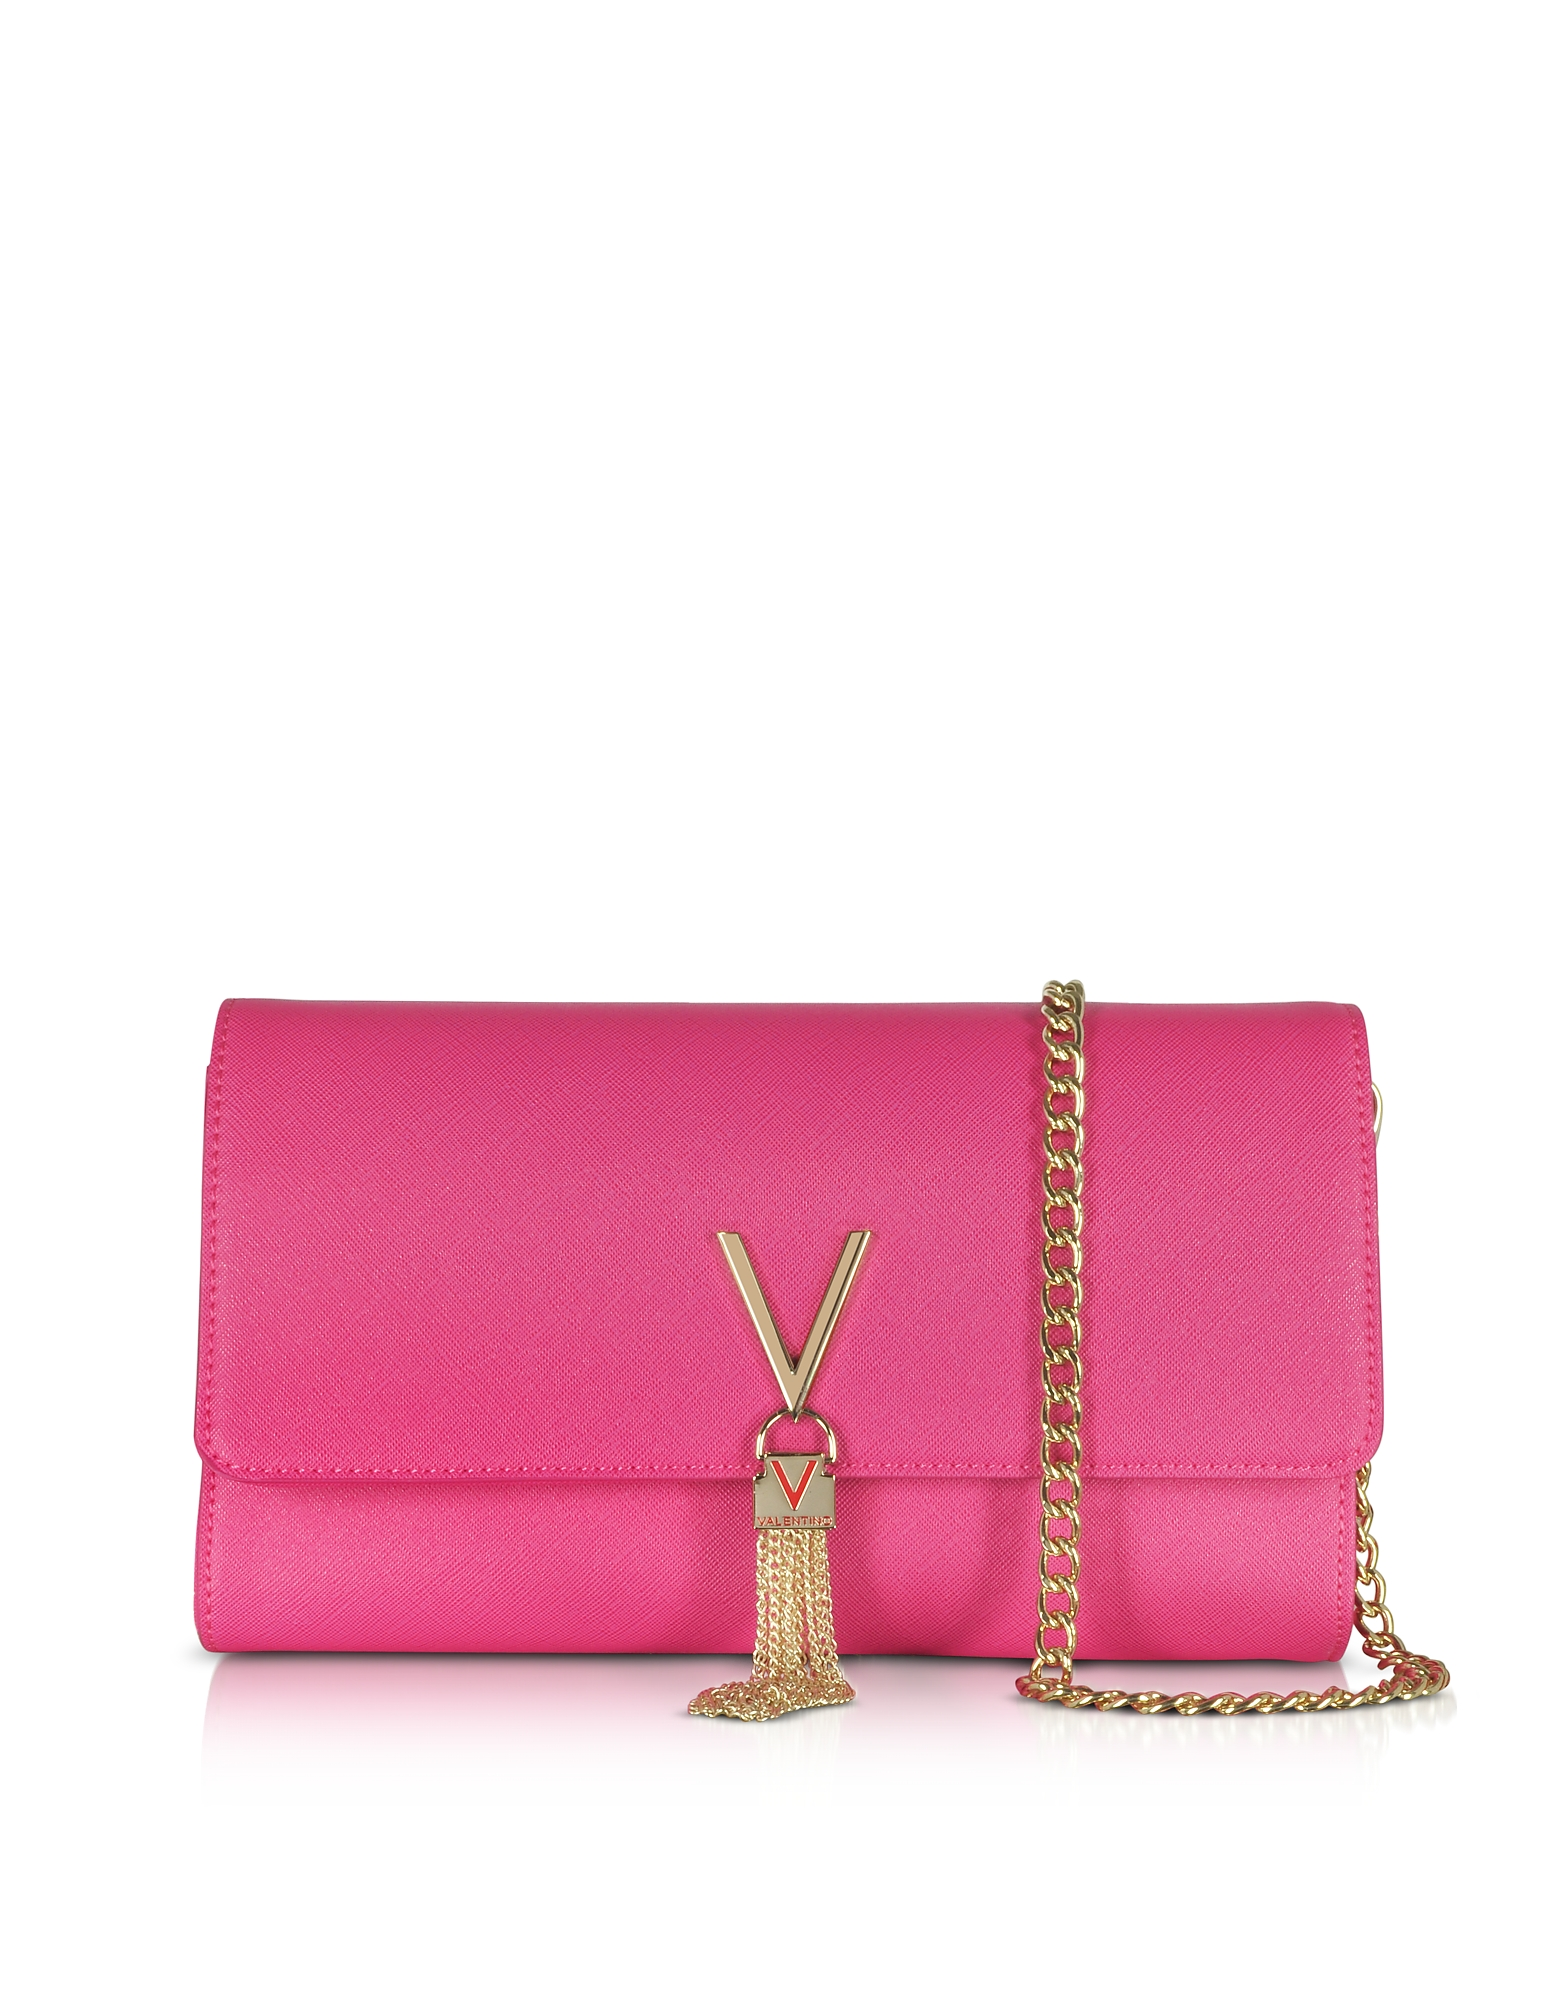 Valentino by Mario Valentino Handbags, Bouganville Saffiano Leather Divina Shoulder Bag